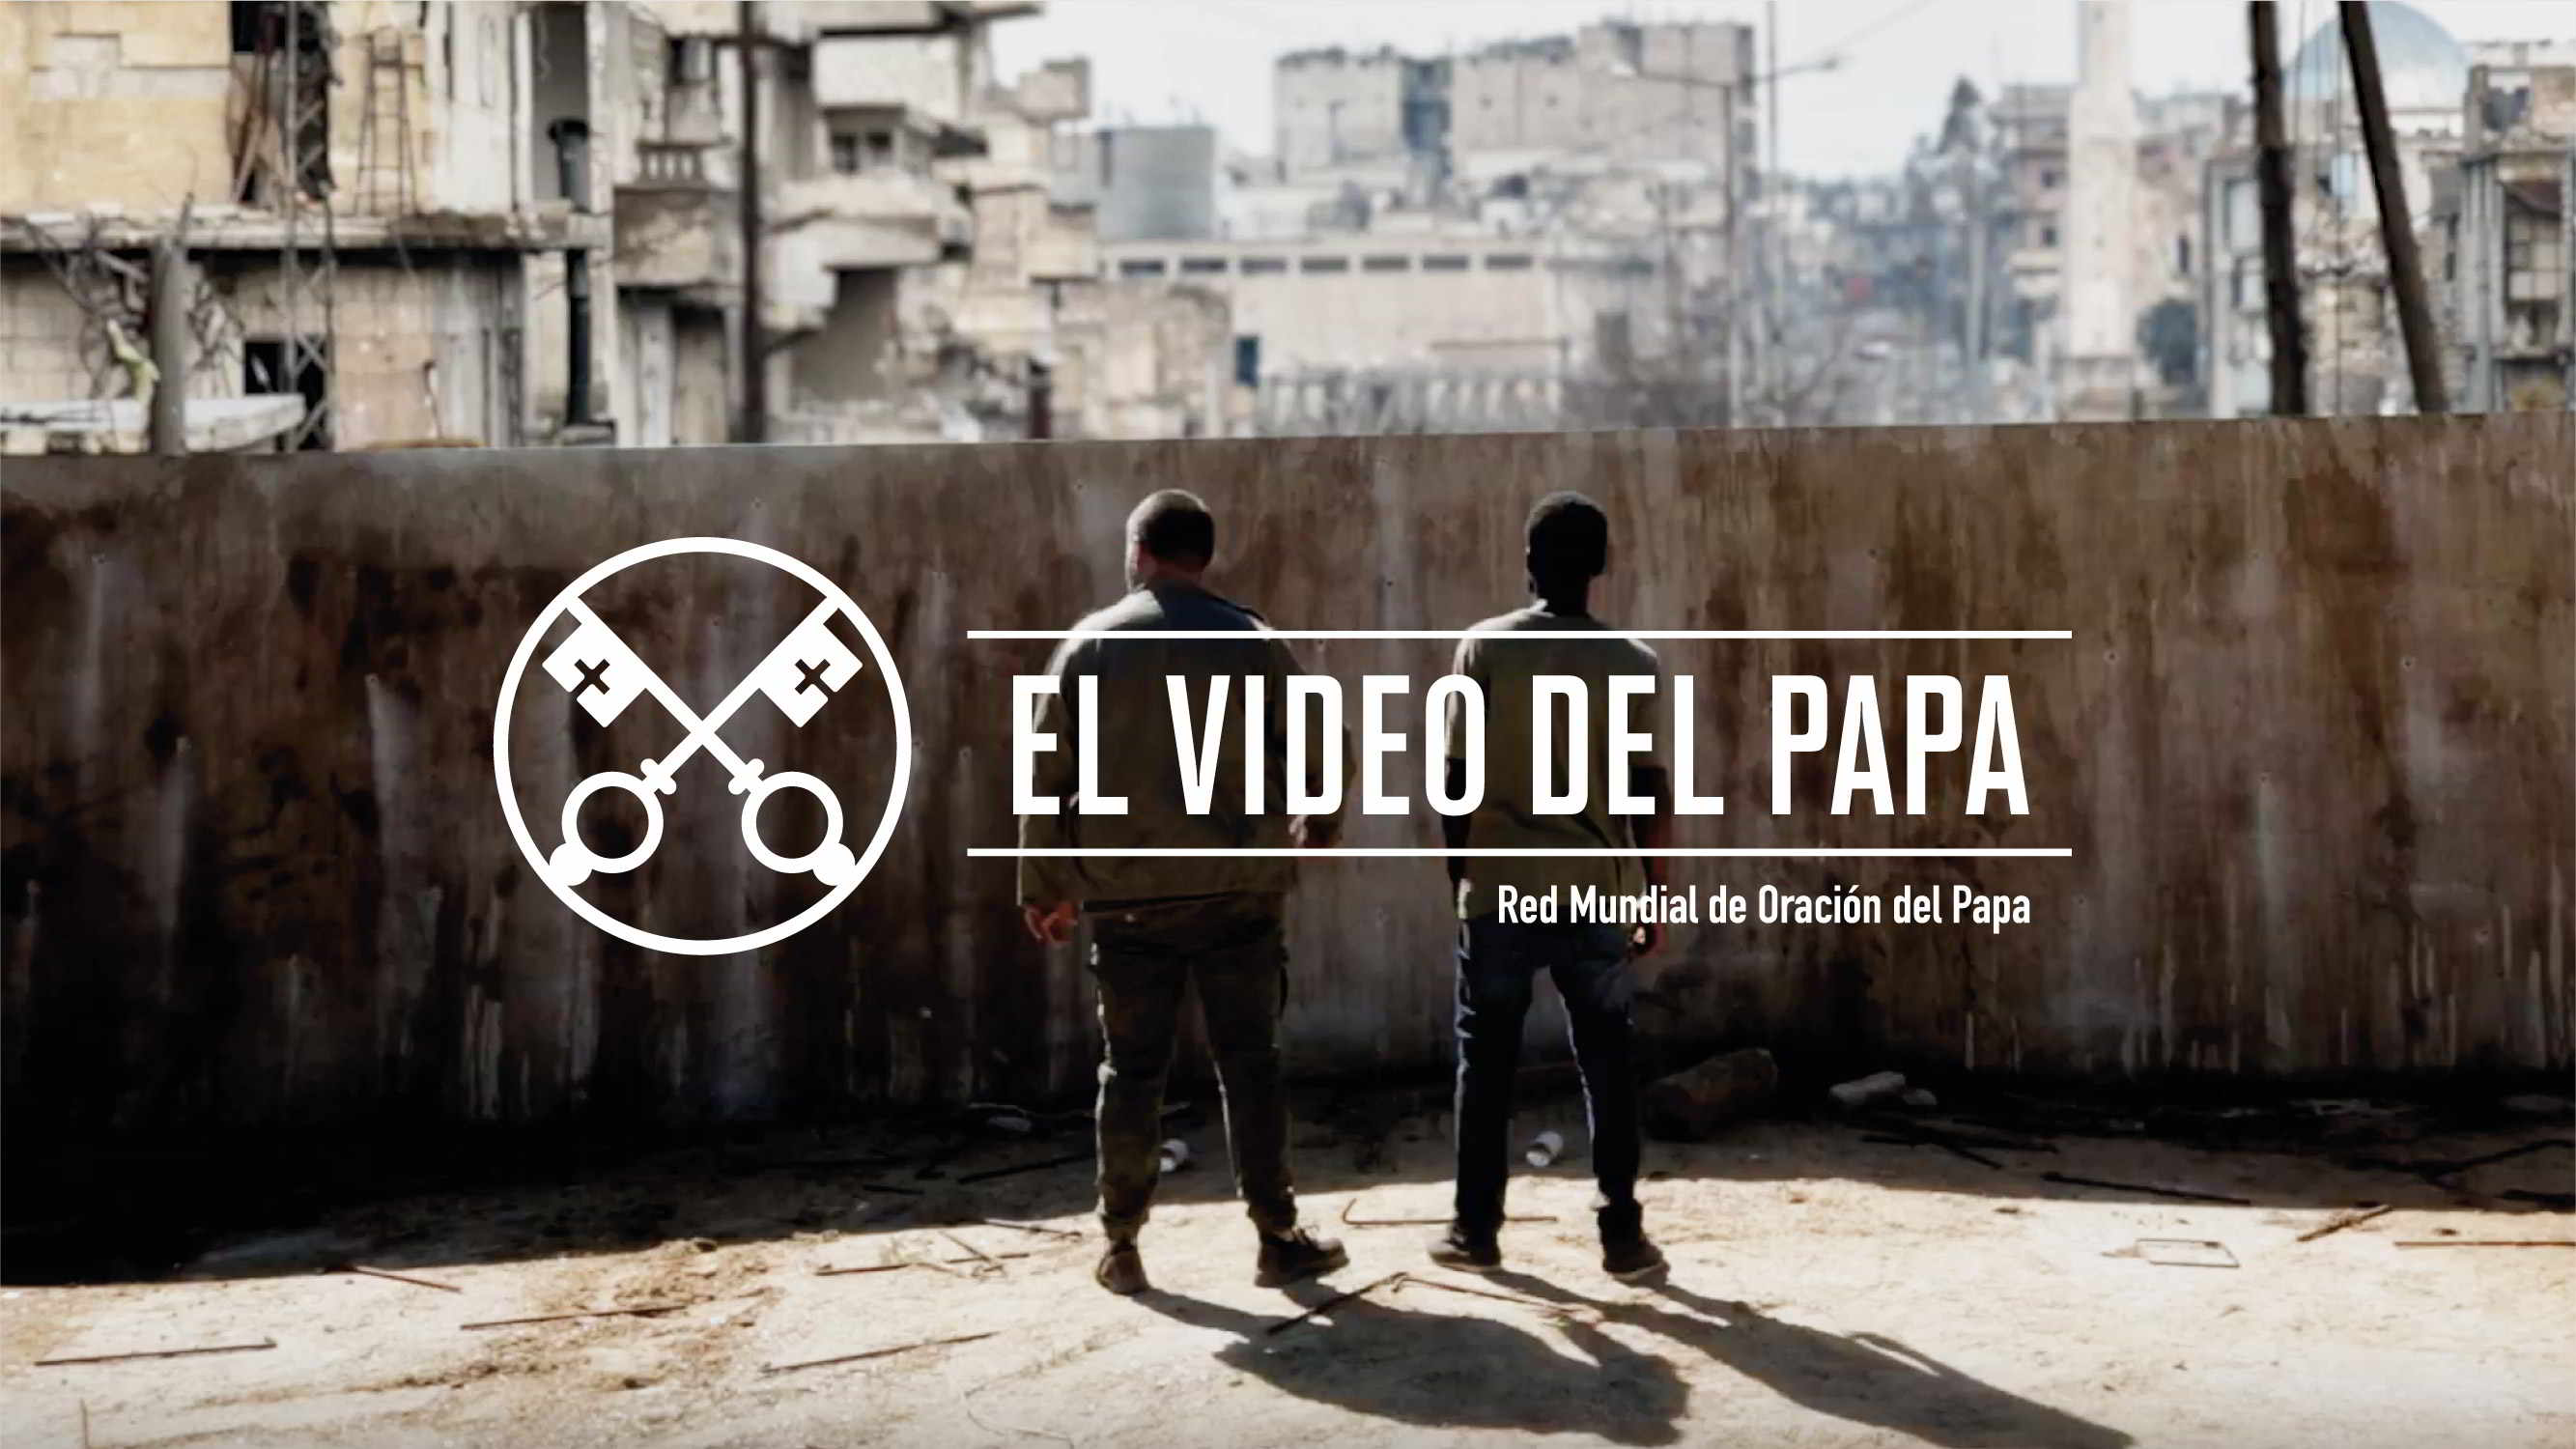 Youtube-Image-The-Pope-Video-11-2018-In-the-Service-of-Peace-2-Spanish